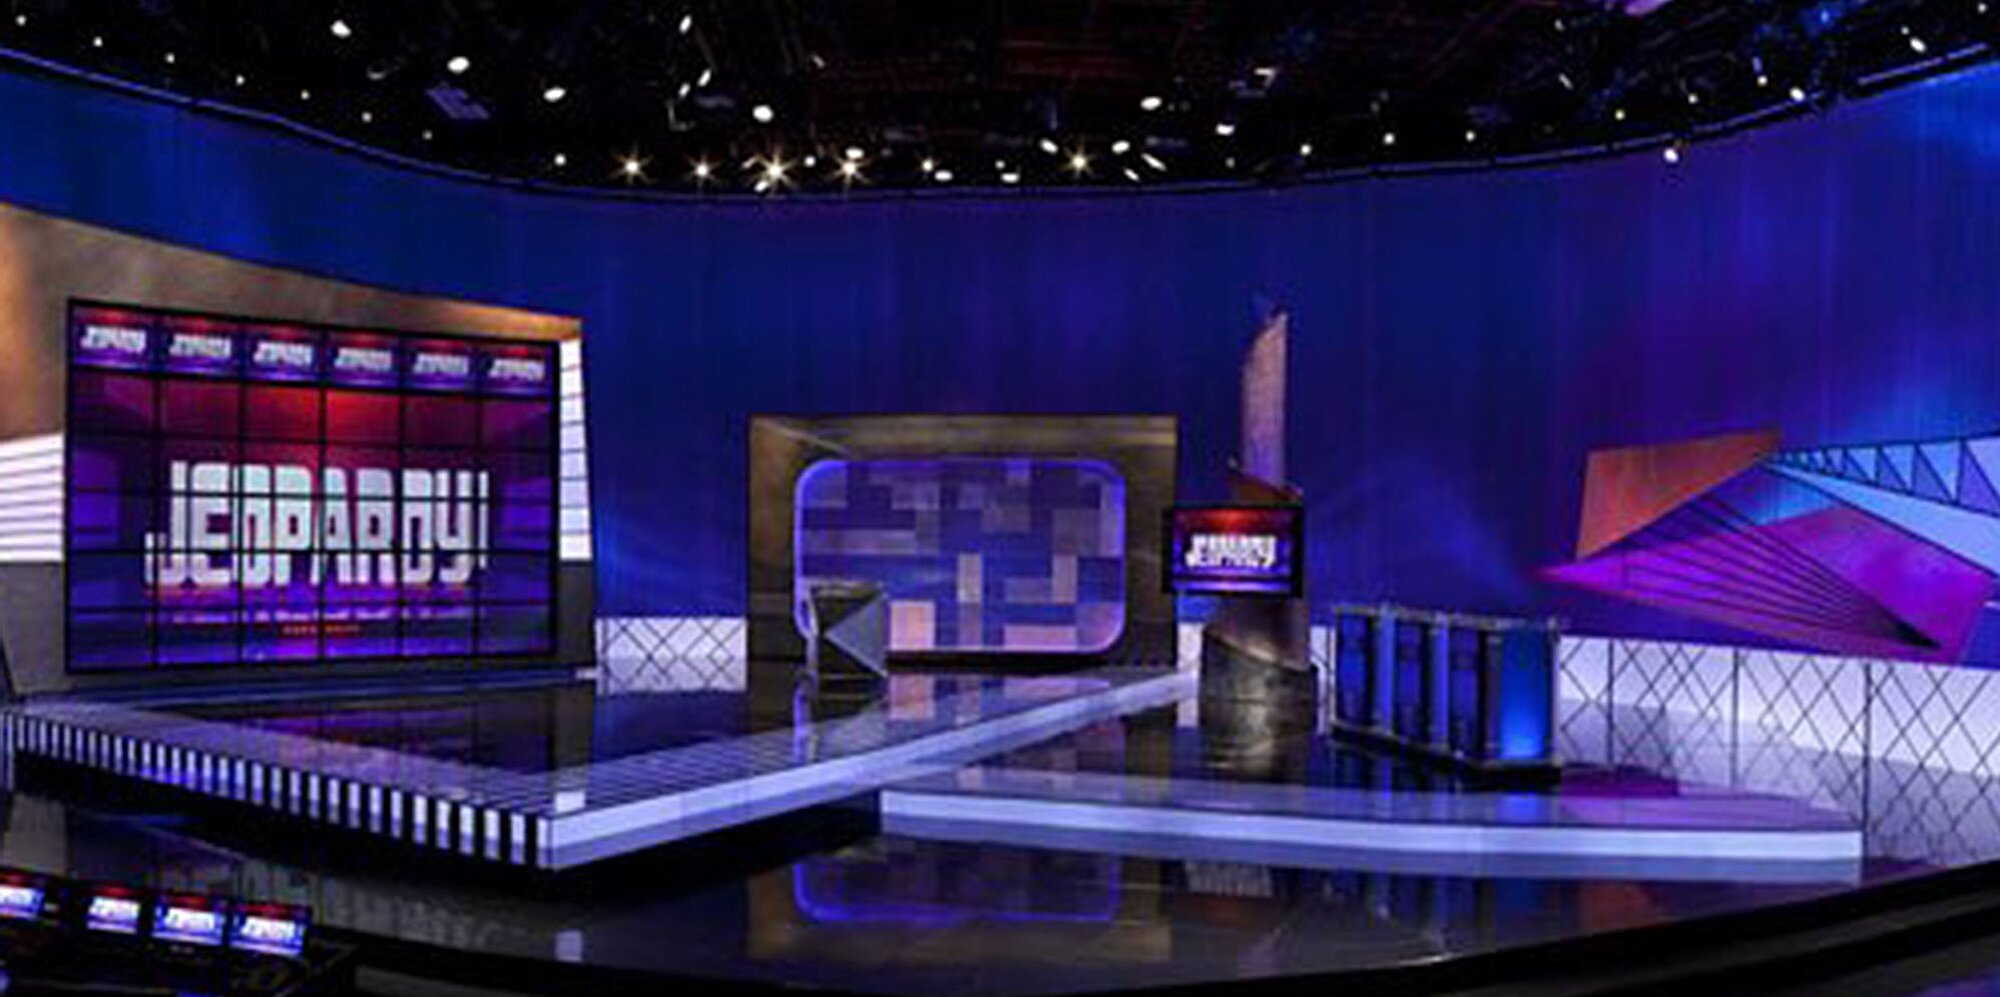 Here's the full schedule of 'Jeopardy' guest hosts